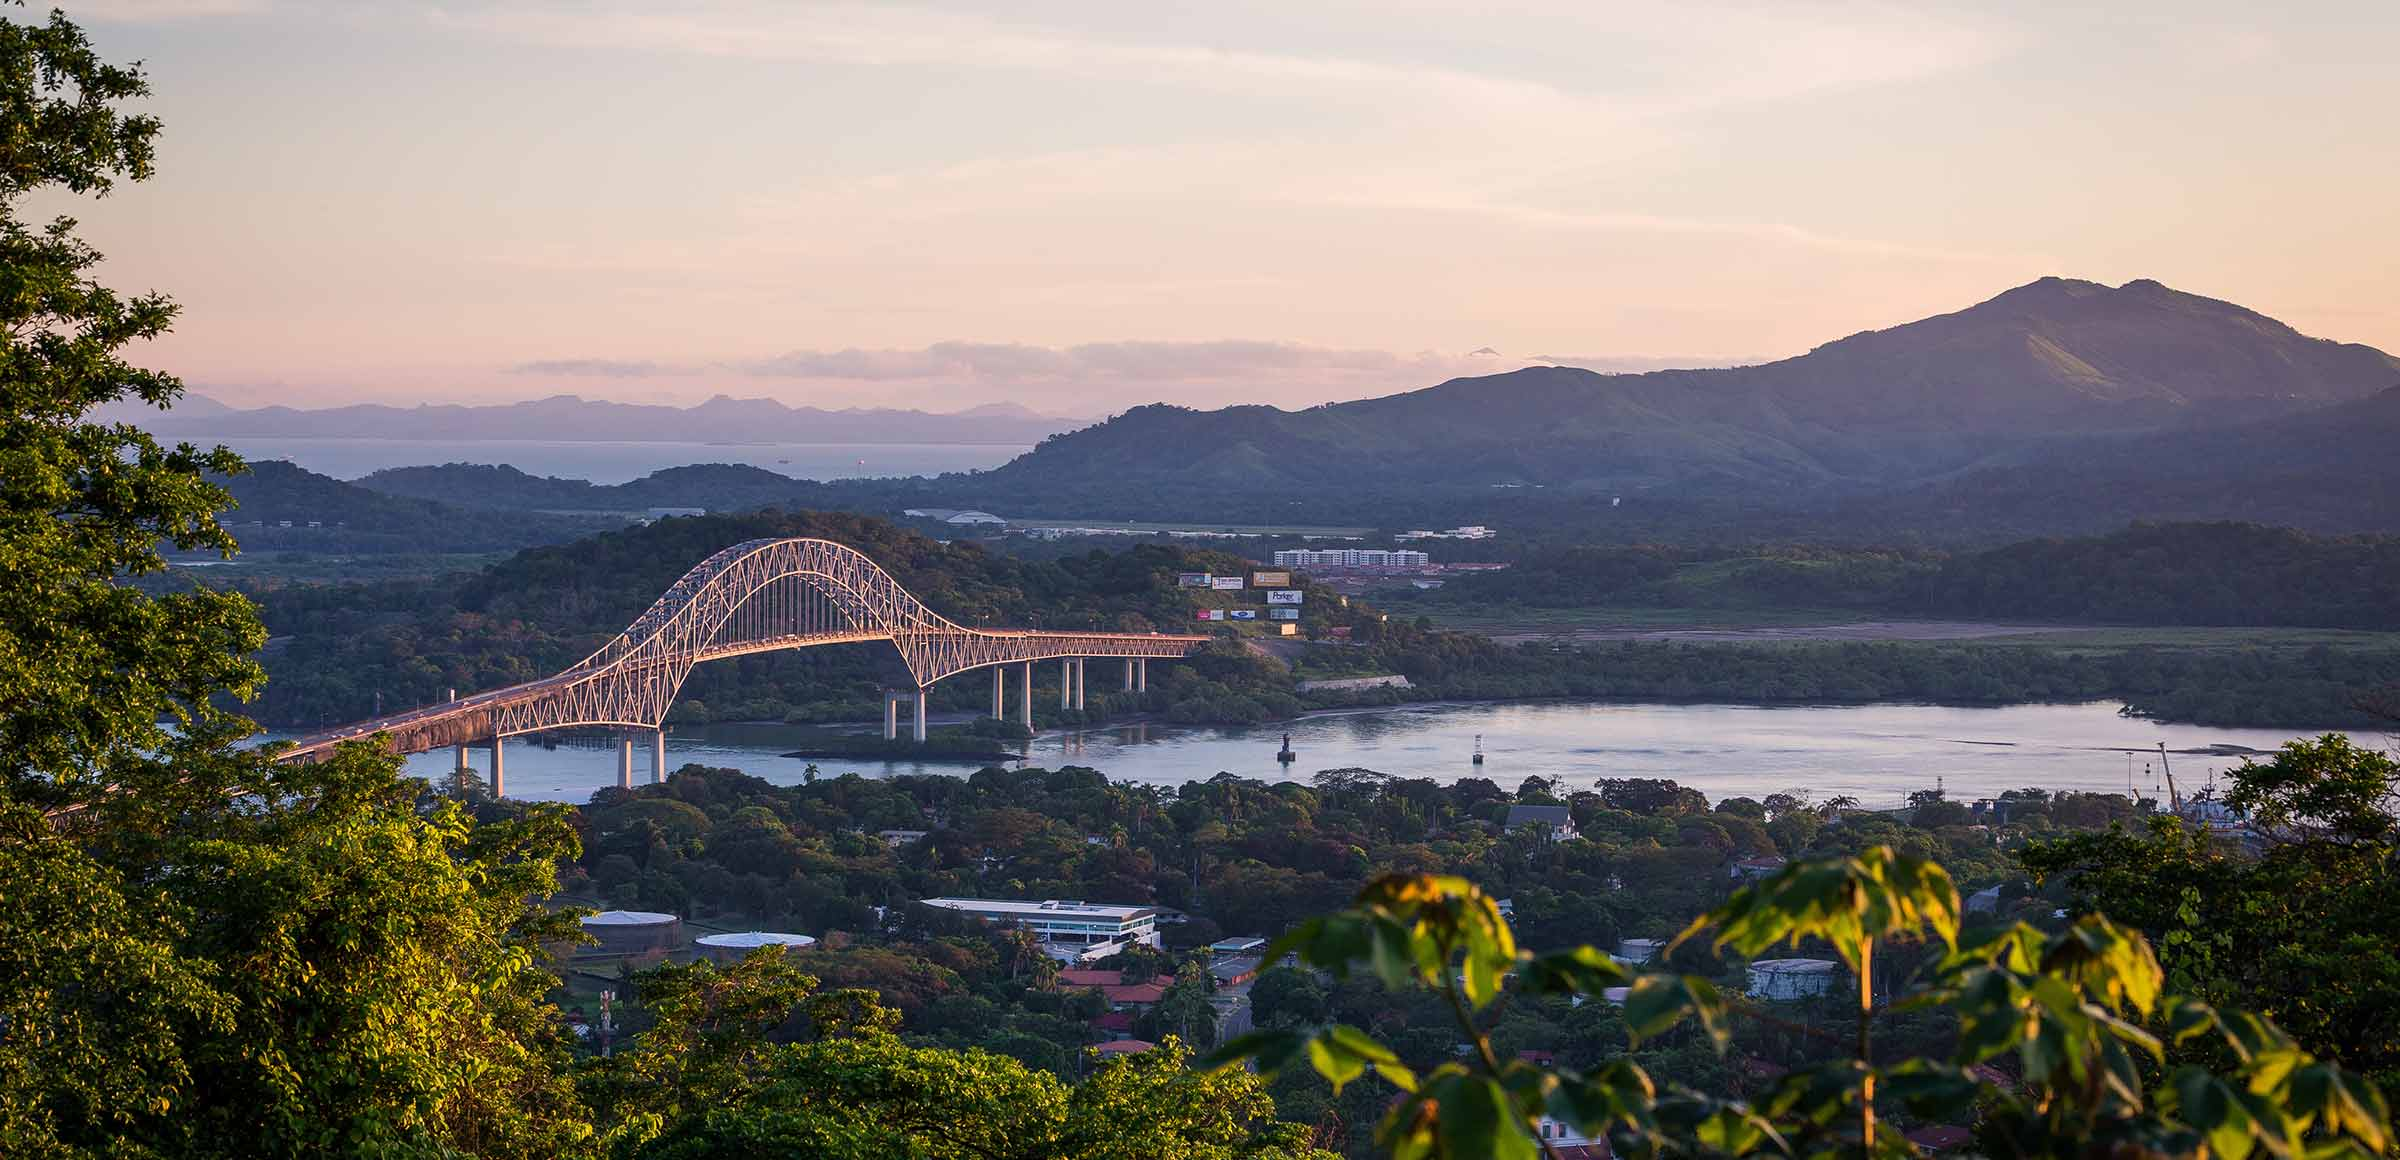 Panama: The Bridge Between Continents Geared Toward a Sustainable Future